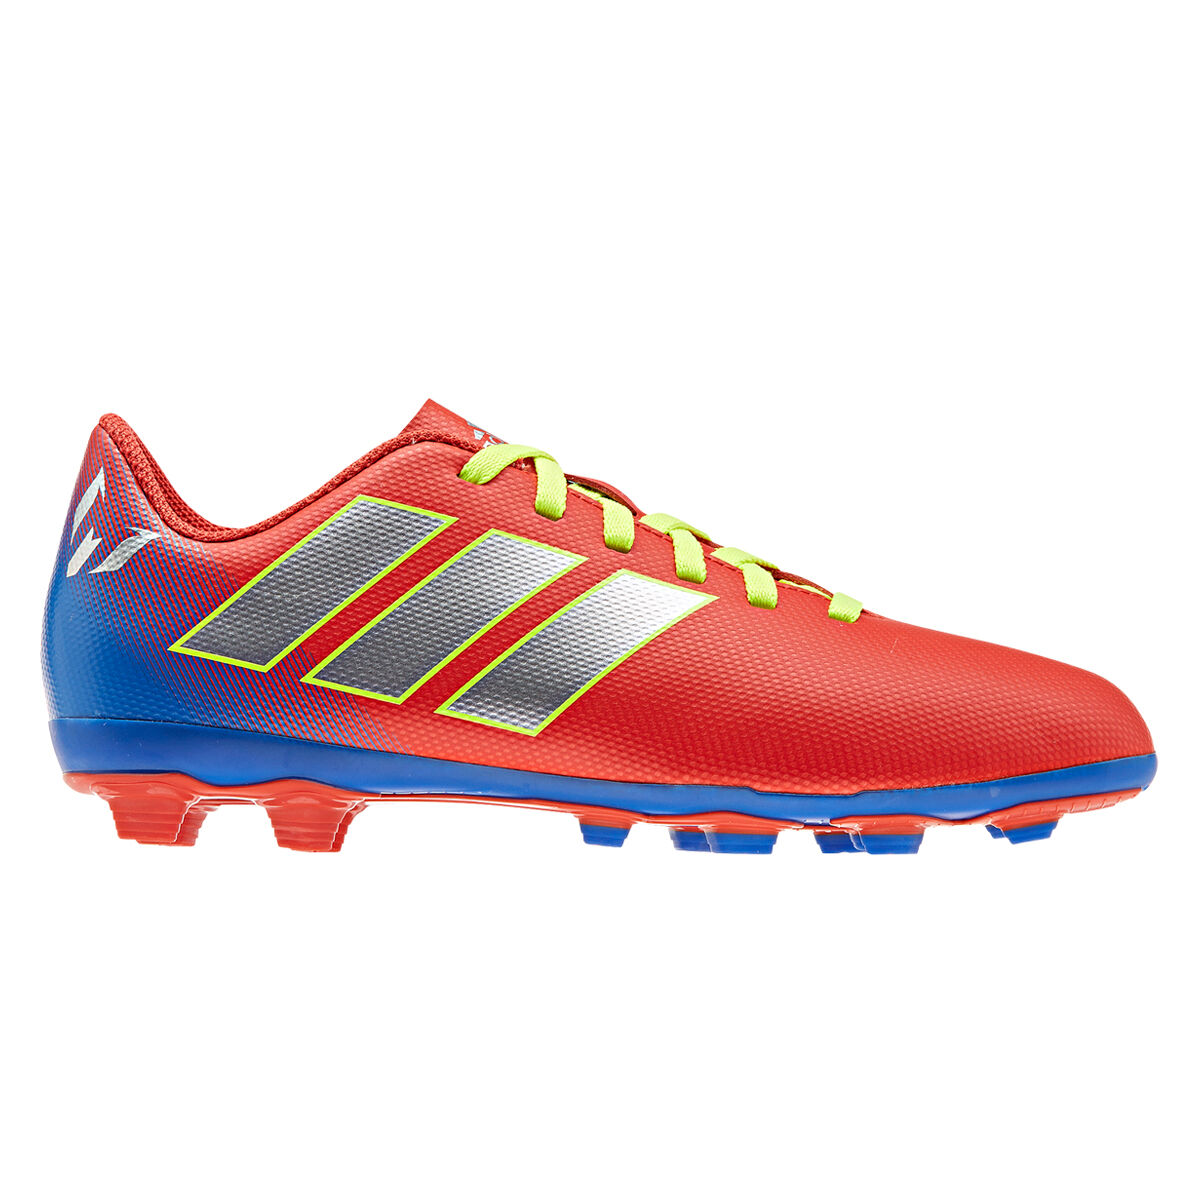 SOLD Adidas Kids sport shoes footballsoccer cleats size 3